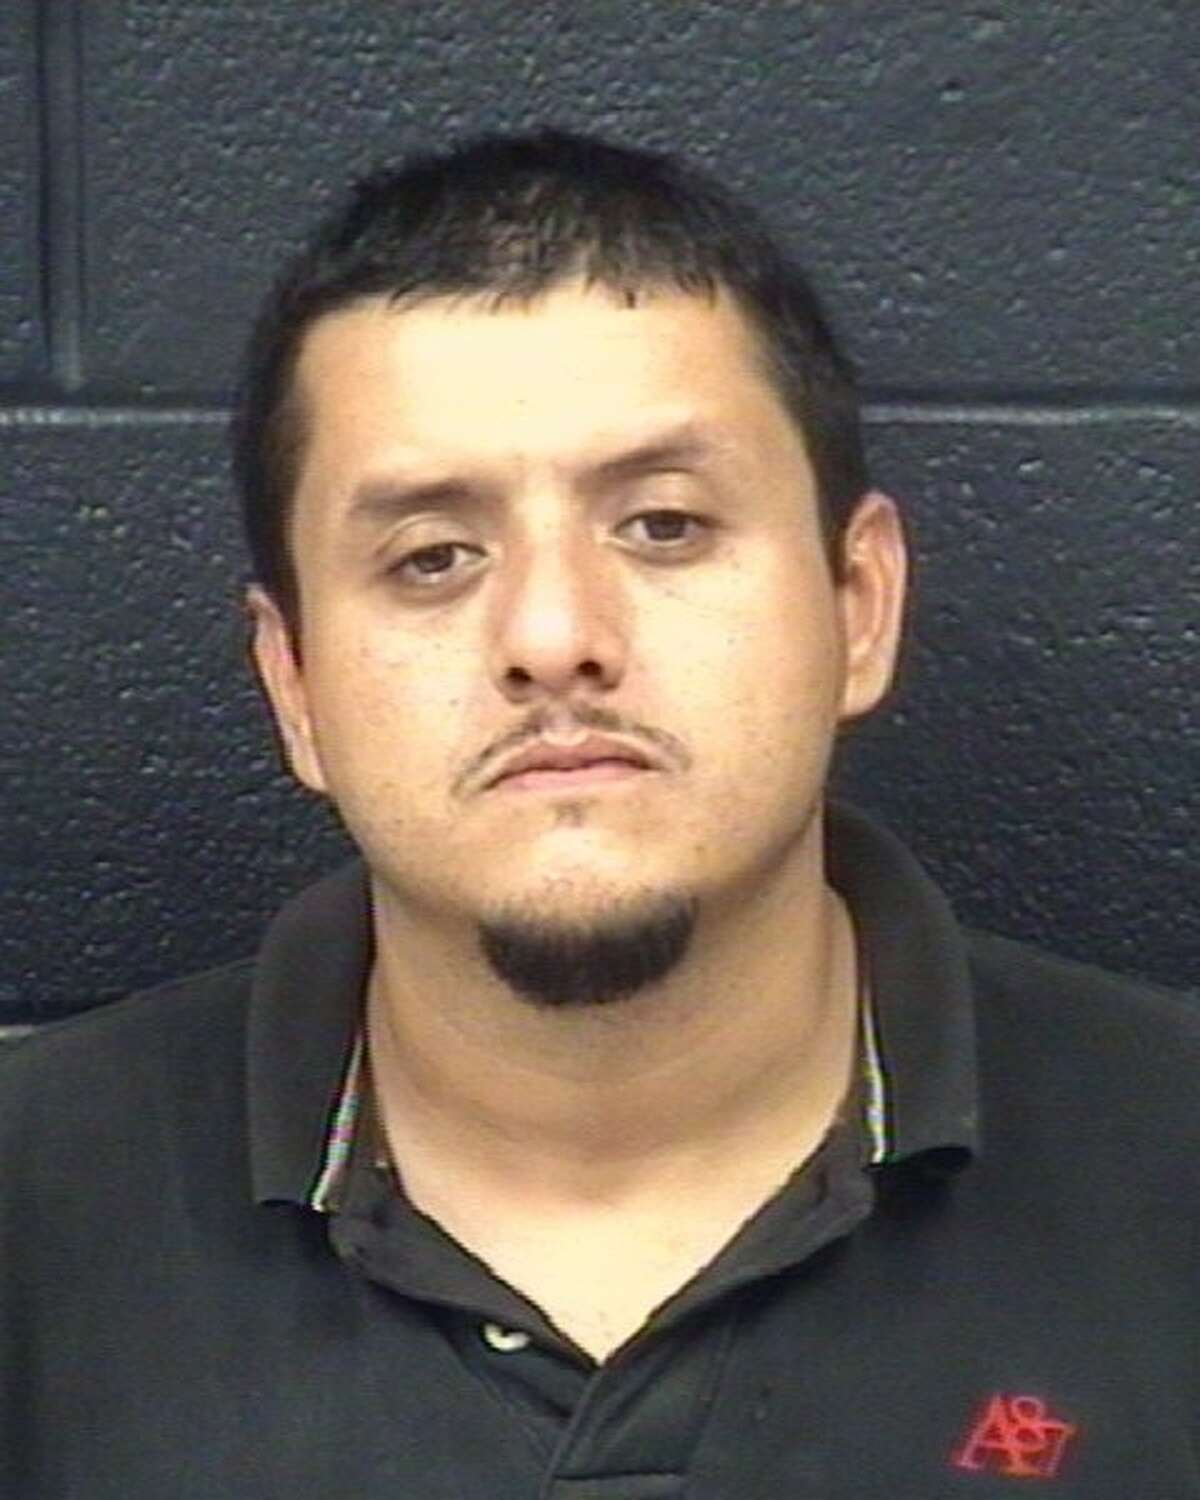 LPD is asking for the community's assistance to find Fernando Alfredo Mora, 32.